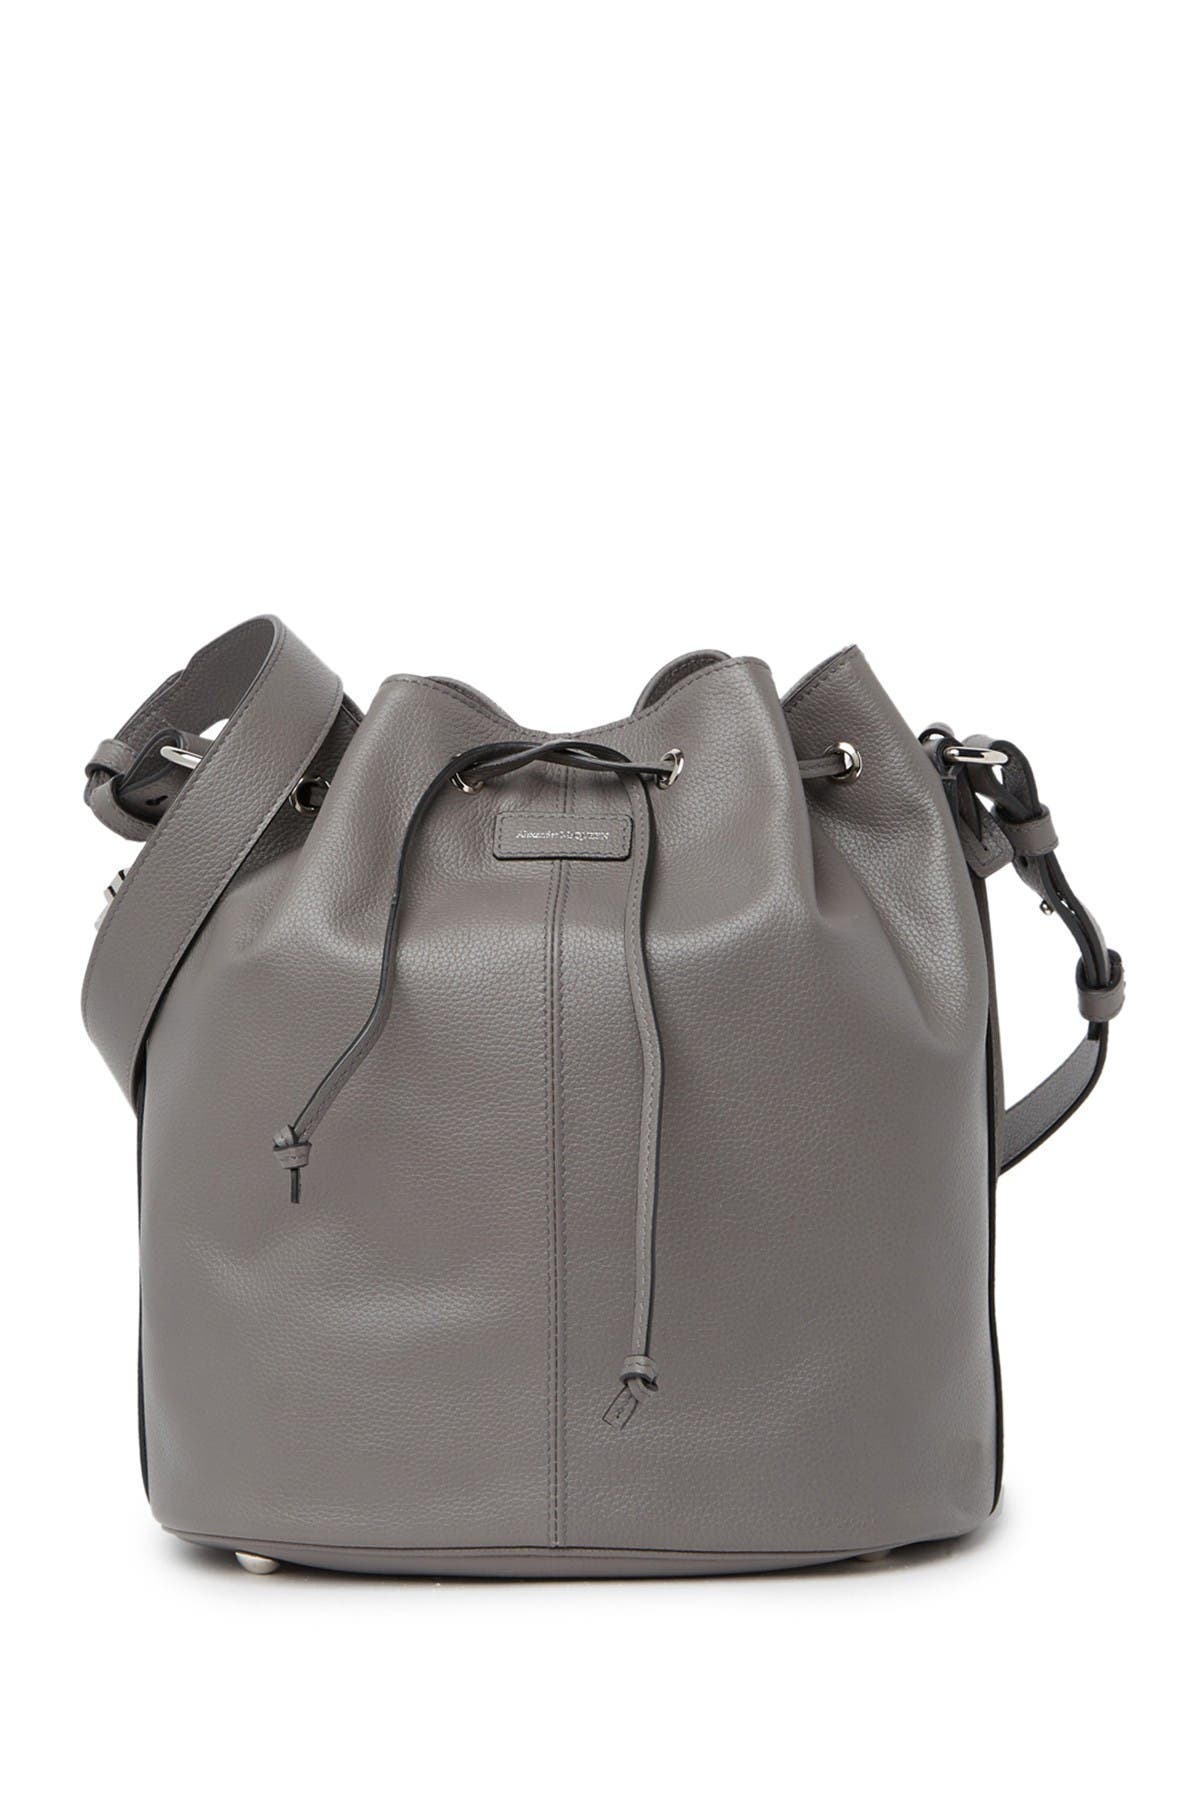 Image of Alexander McQueen Padlock Skull Leather Bucket Bag